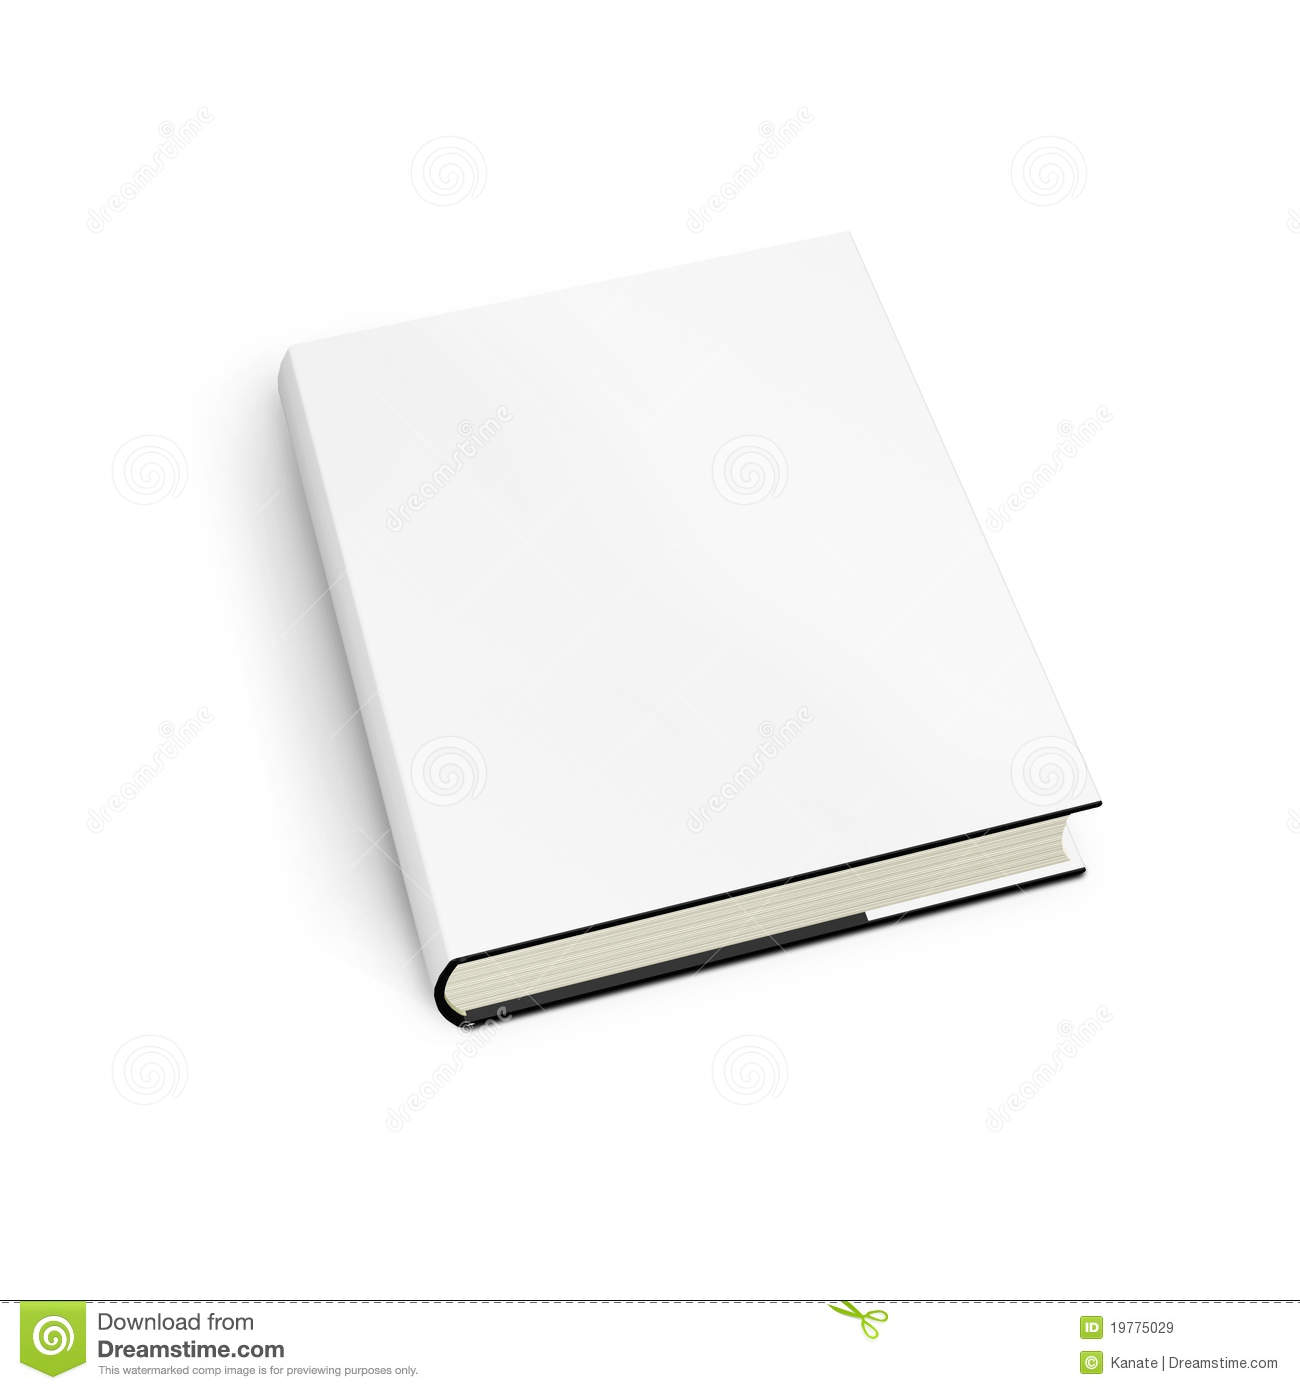 Book Cover White Background : Book with white cover on background royalty free